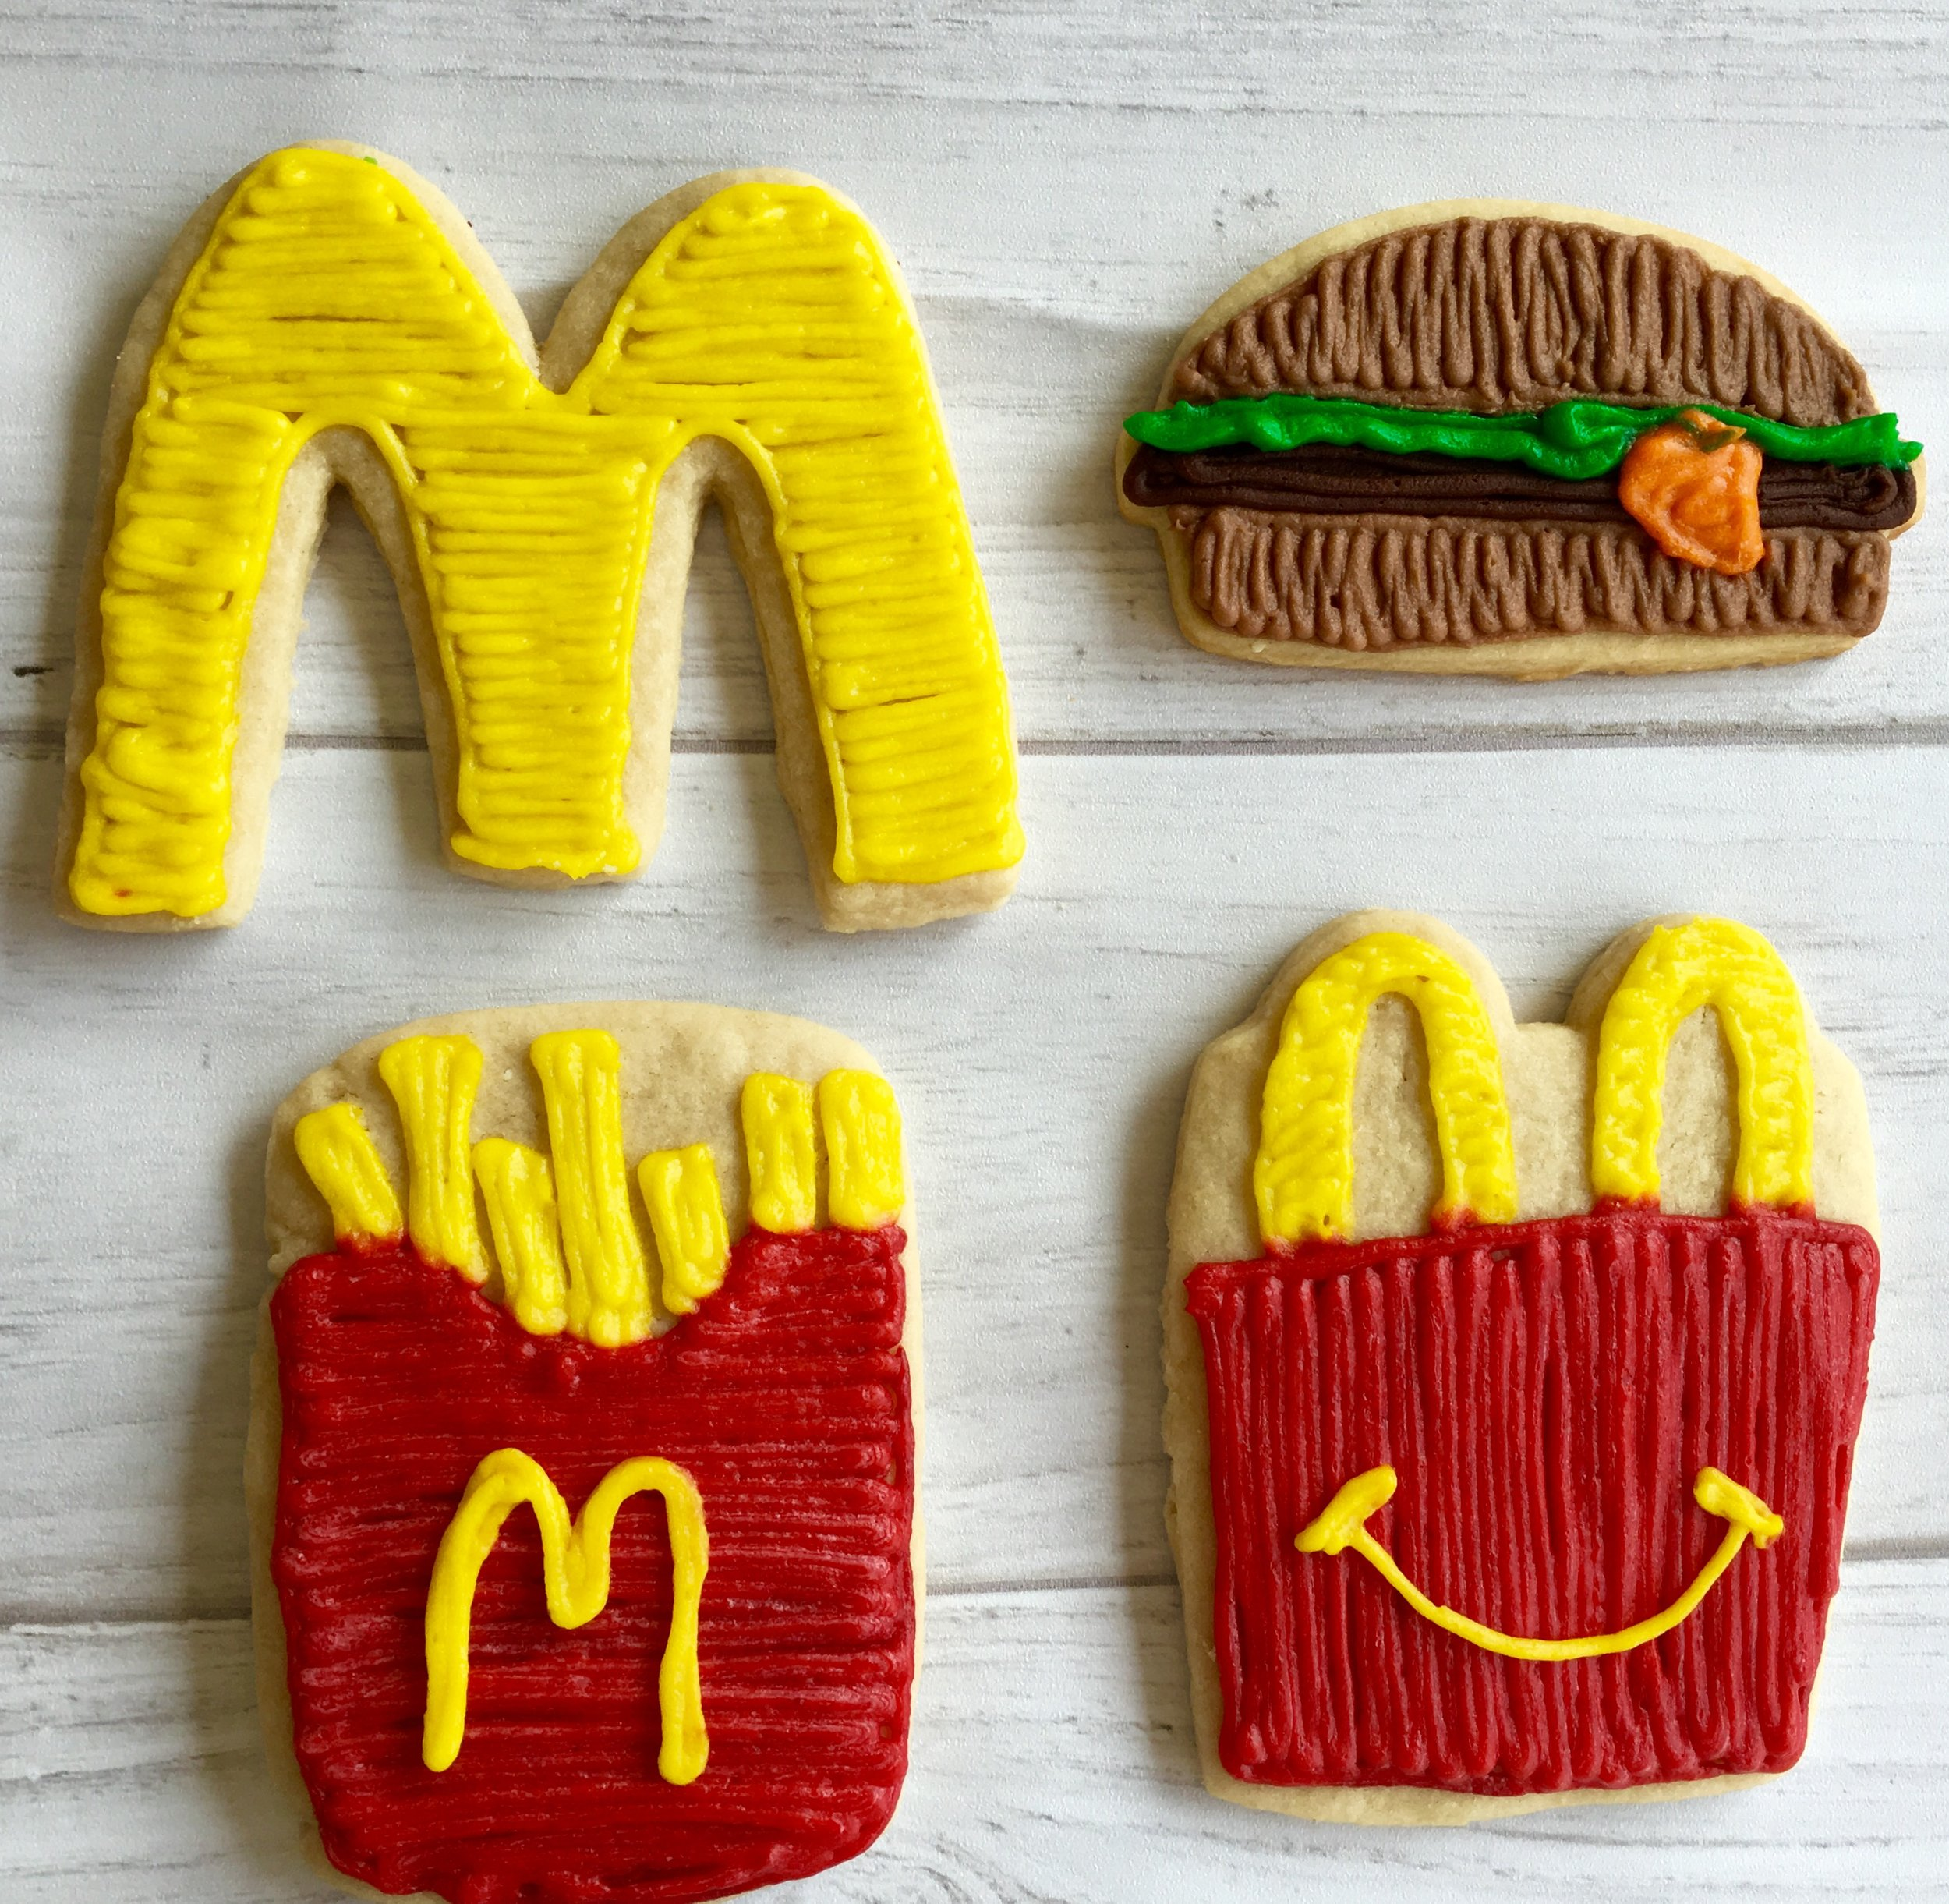 McDonald's Collection 2.jpg